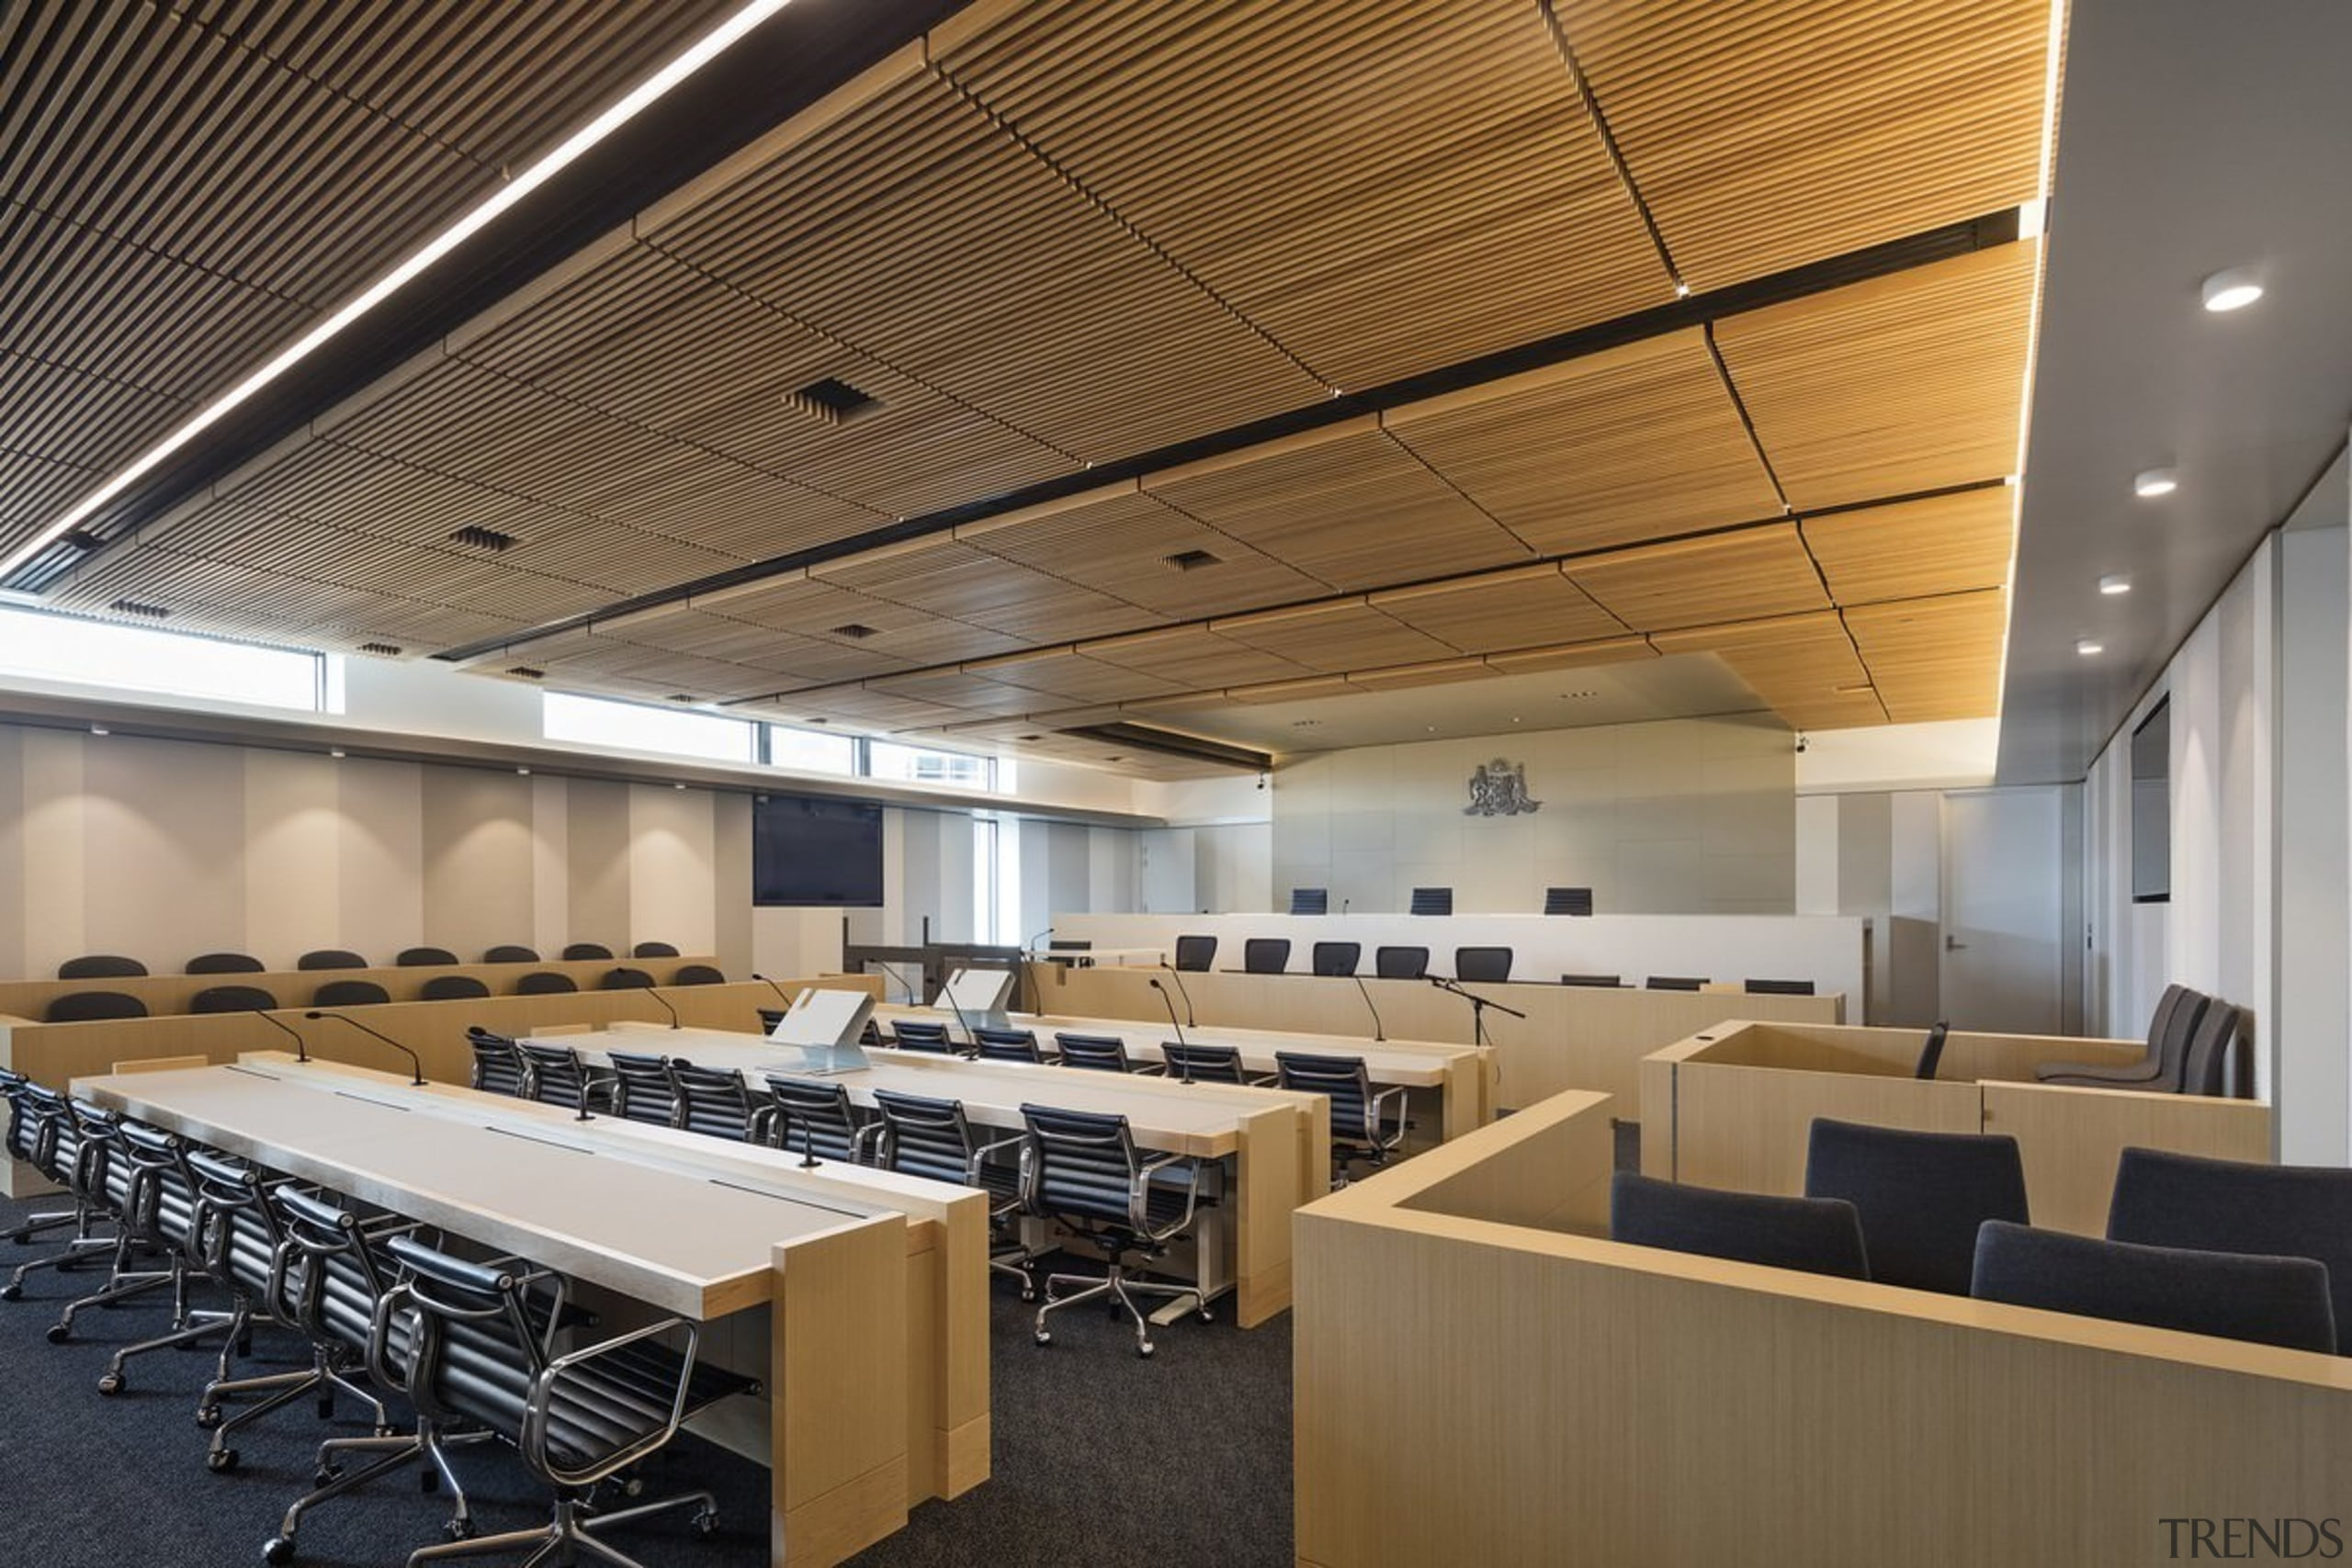 Newcastle Courthouse – Cox Architecture - Newcastle Courthouse auditorium, ceiling, classroom, conference hall, daylighting, interior design, office, brown, gray